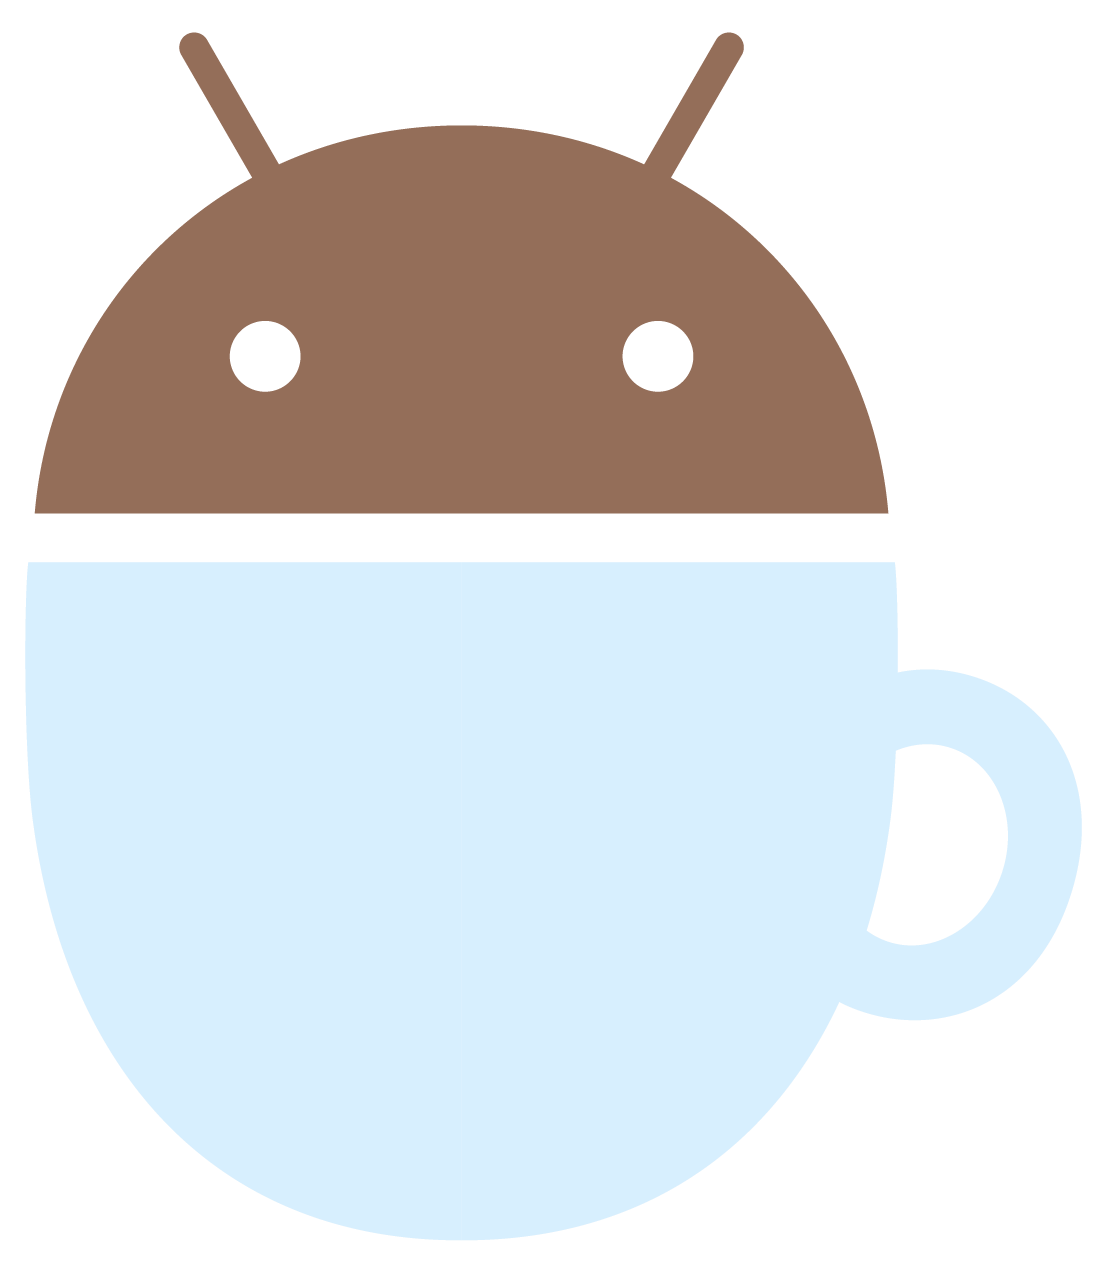 Android Espresso instrumented test